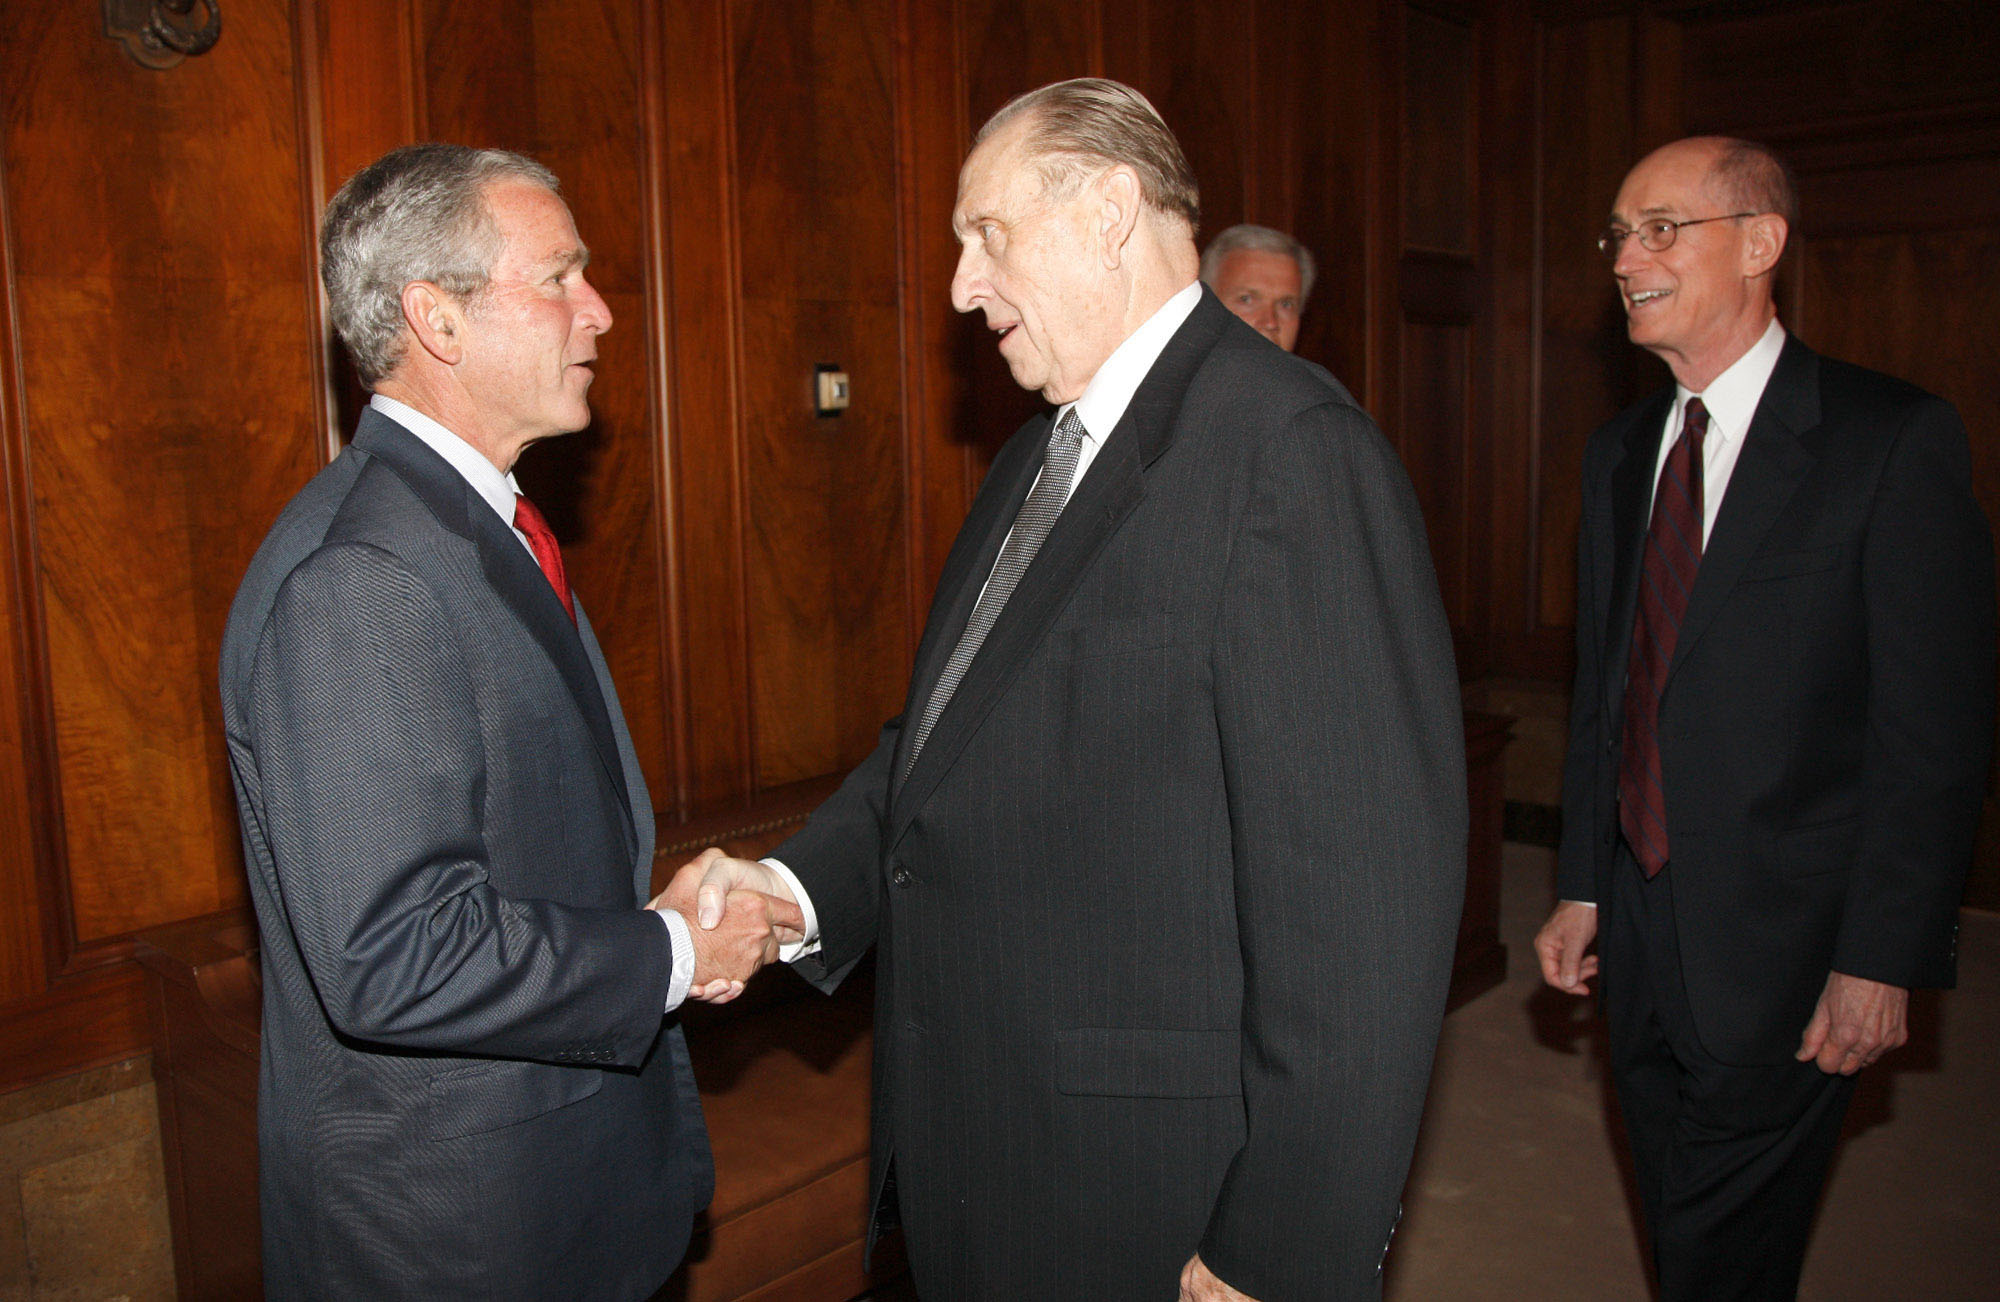 (White House photo by Eric Draper) President George W. Bush greets President Thomas S. Monson at the churchÕs headquarters on May 29, 2008.